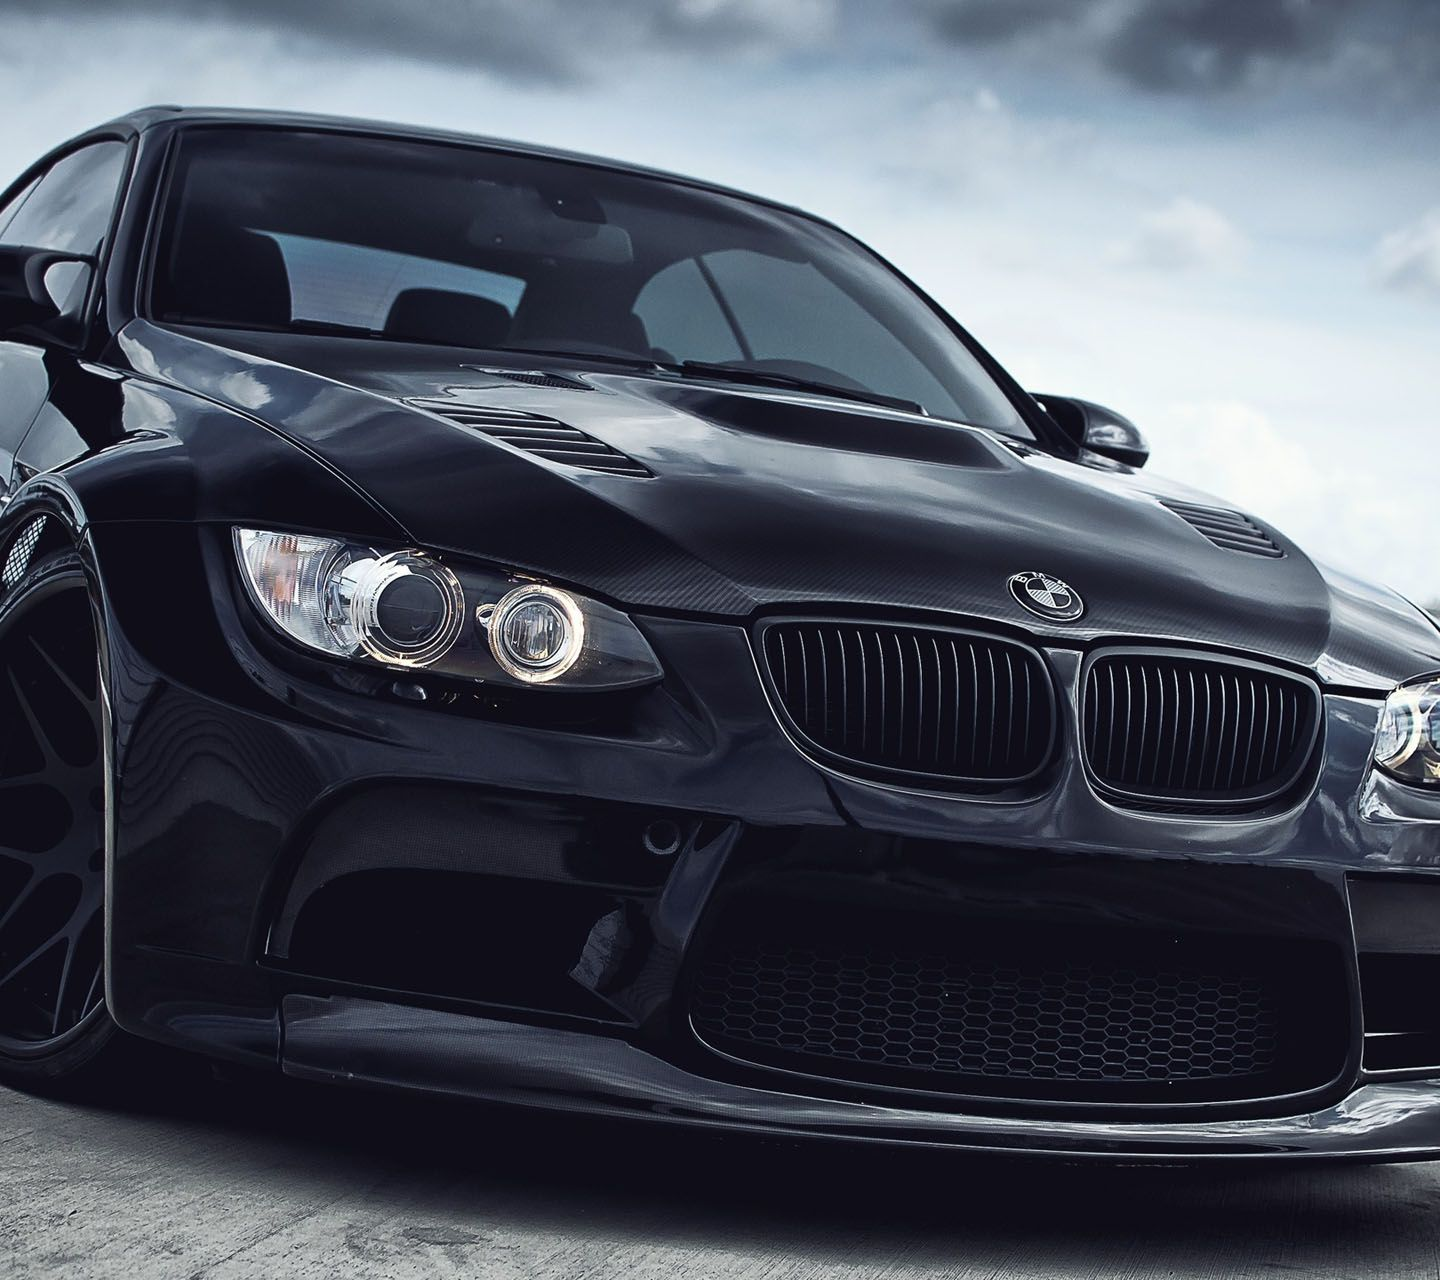 Blacked out BMW M3 closeup.